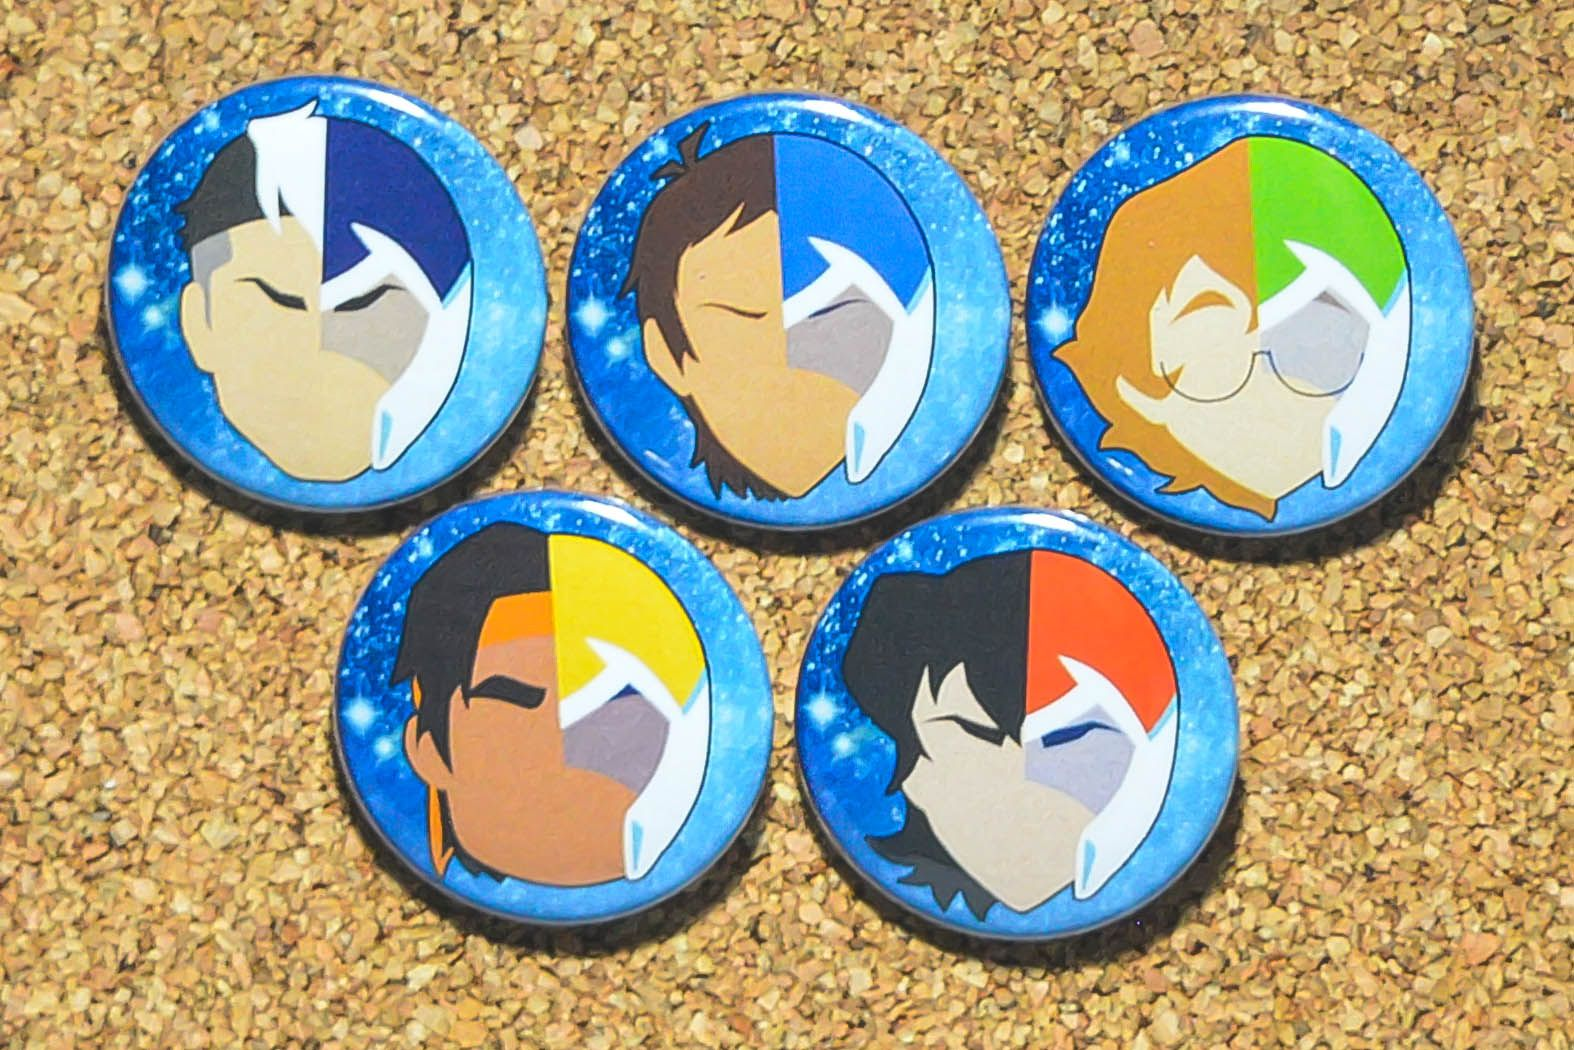 Voltron legendary defenders pins only 5 for the whole set of voltron legendary defenders pins only 5 for the whole set of biocorpaavc